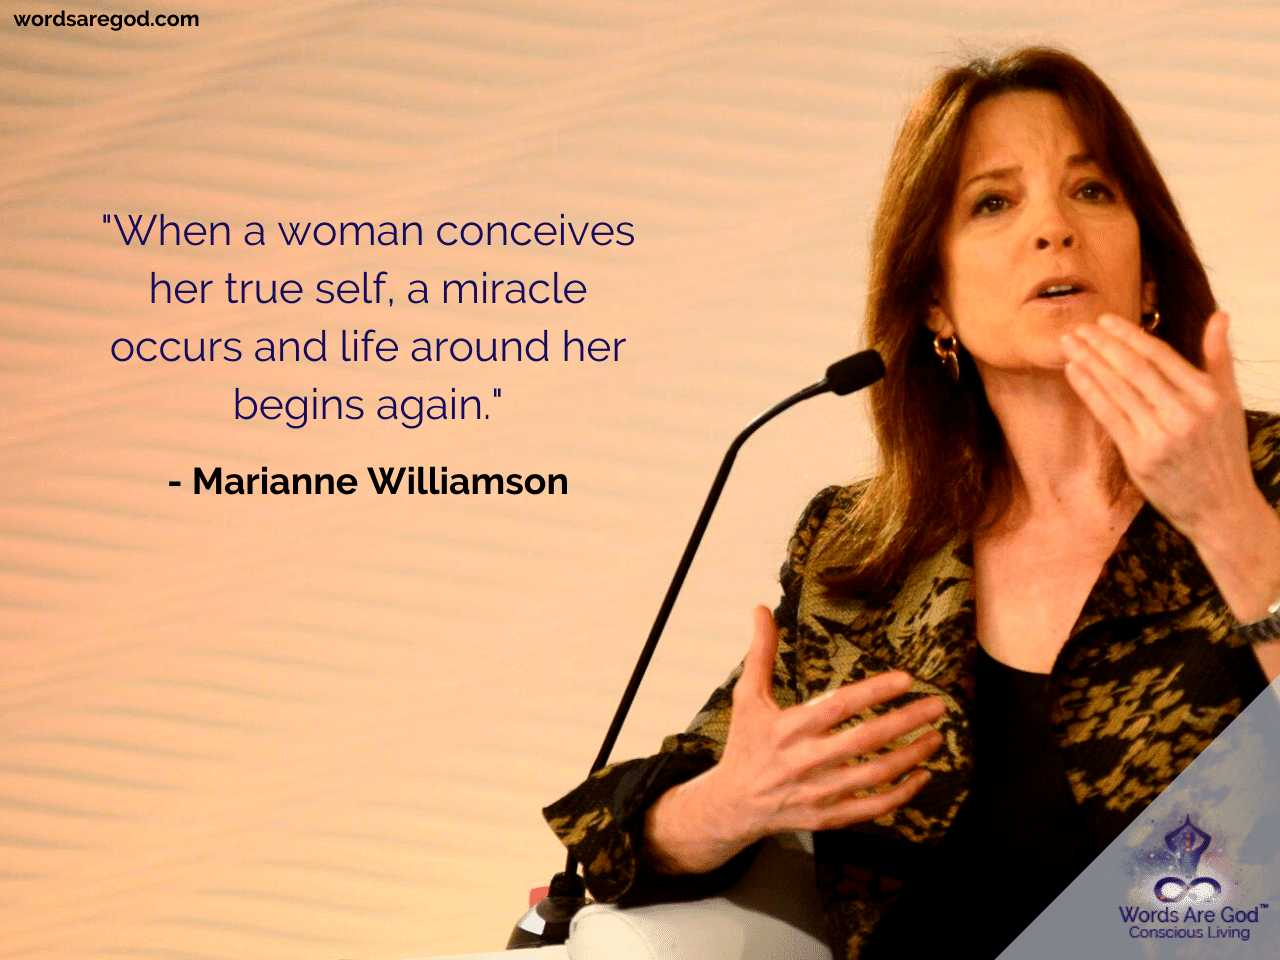 Marianne Williamson Inspirational Quote by Marianne Williamson